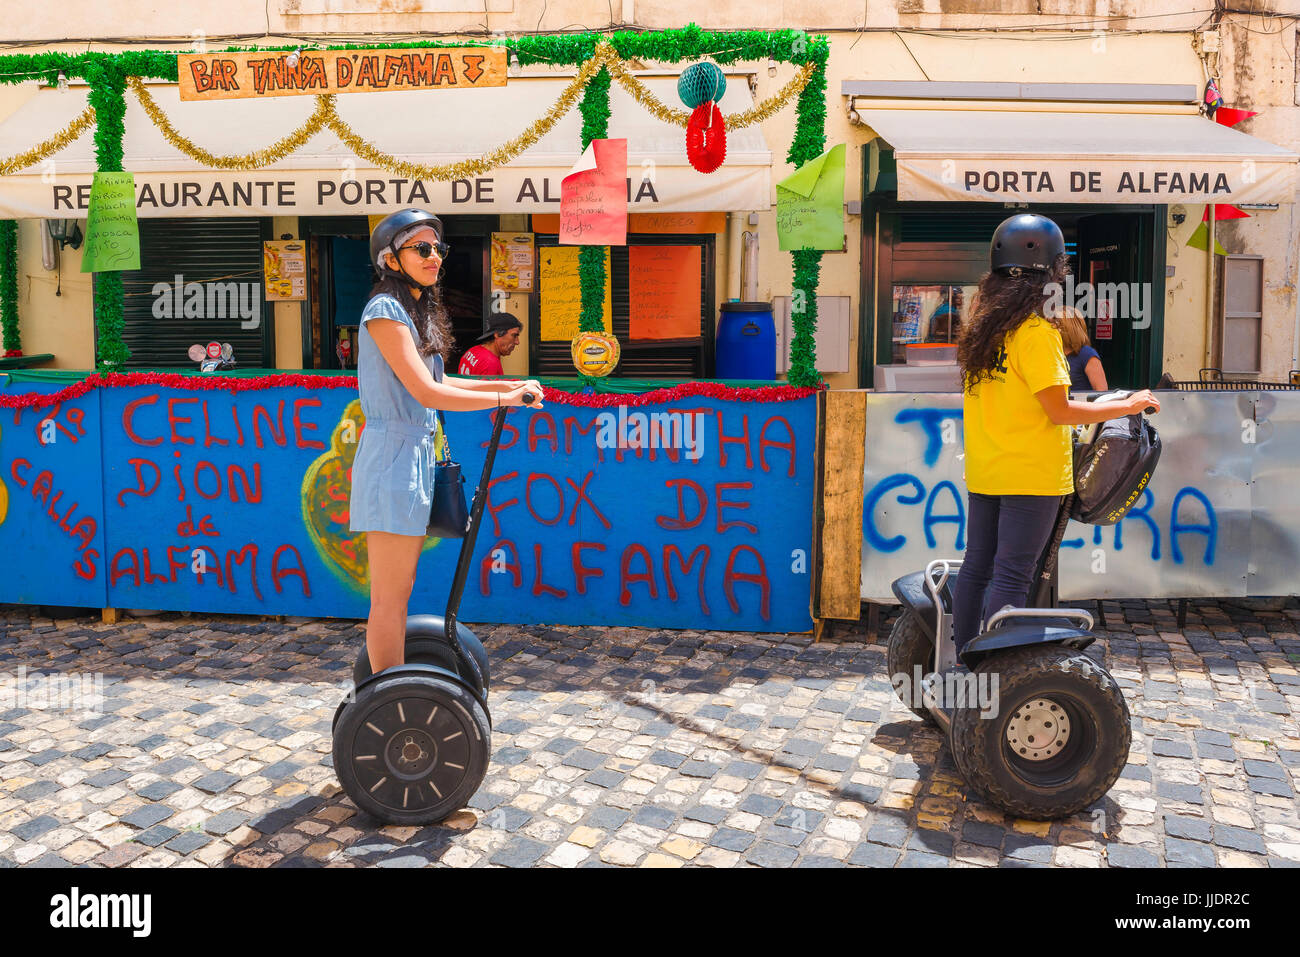 Lisbon Alfama tourists, two young women tour the old town Alfama district of Lisbon on segways, Portugal. - Stock Image